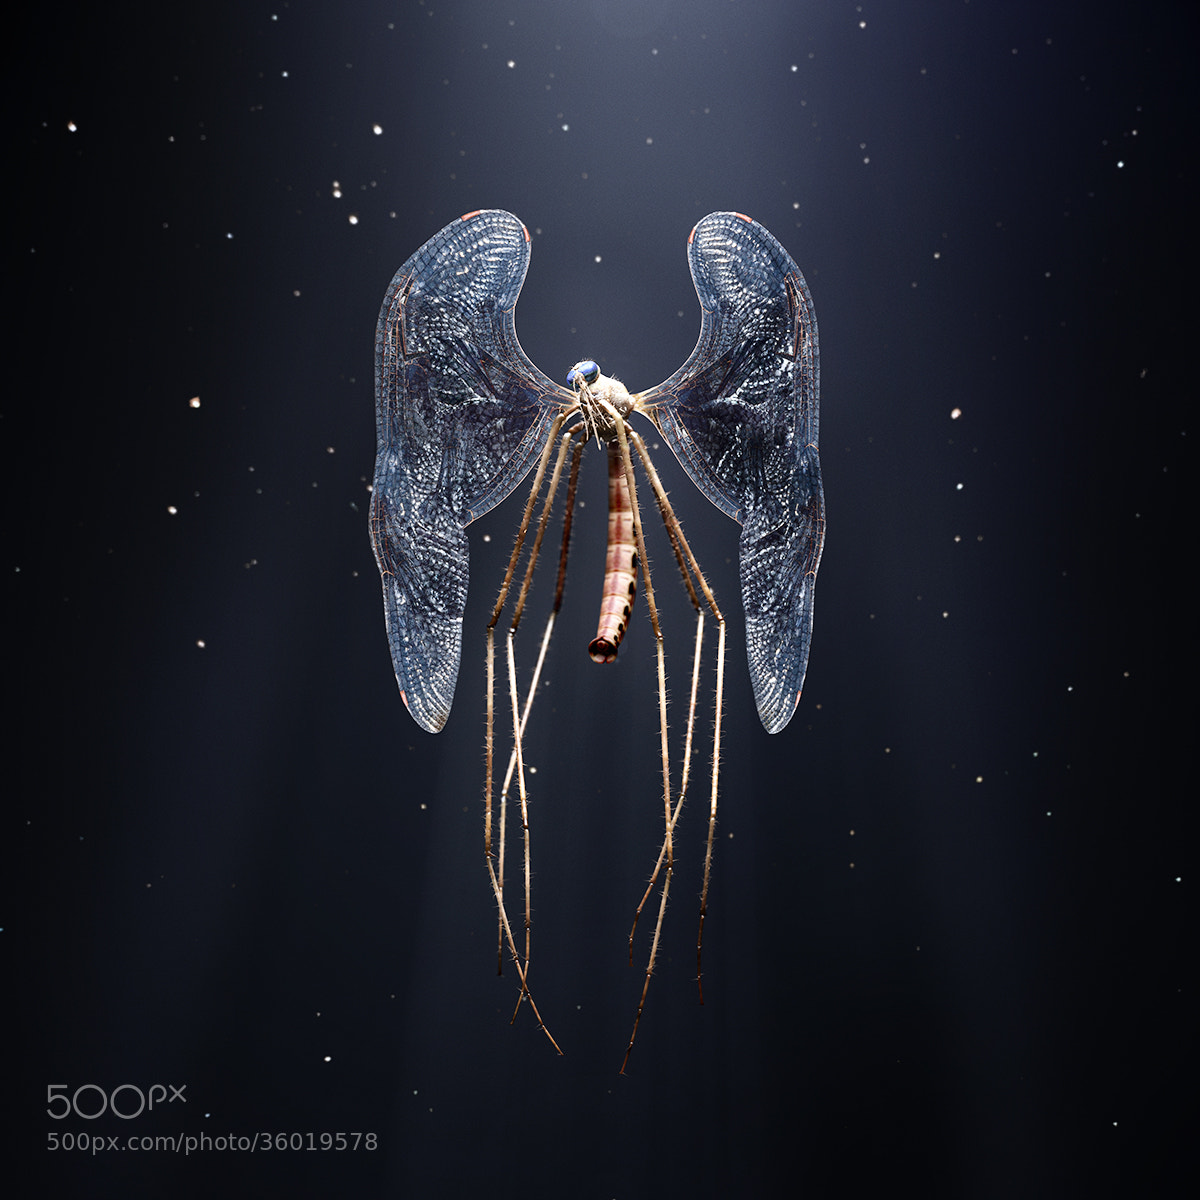 Photograph Mosquito by DDNA on 500px